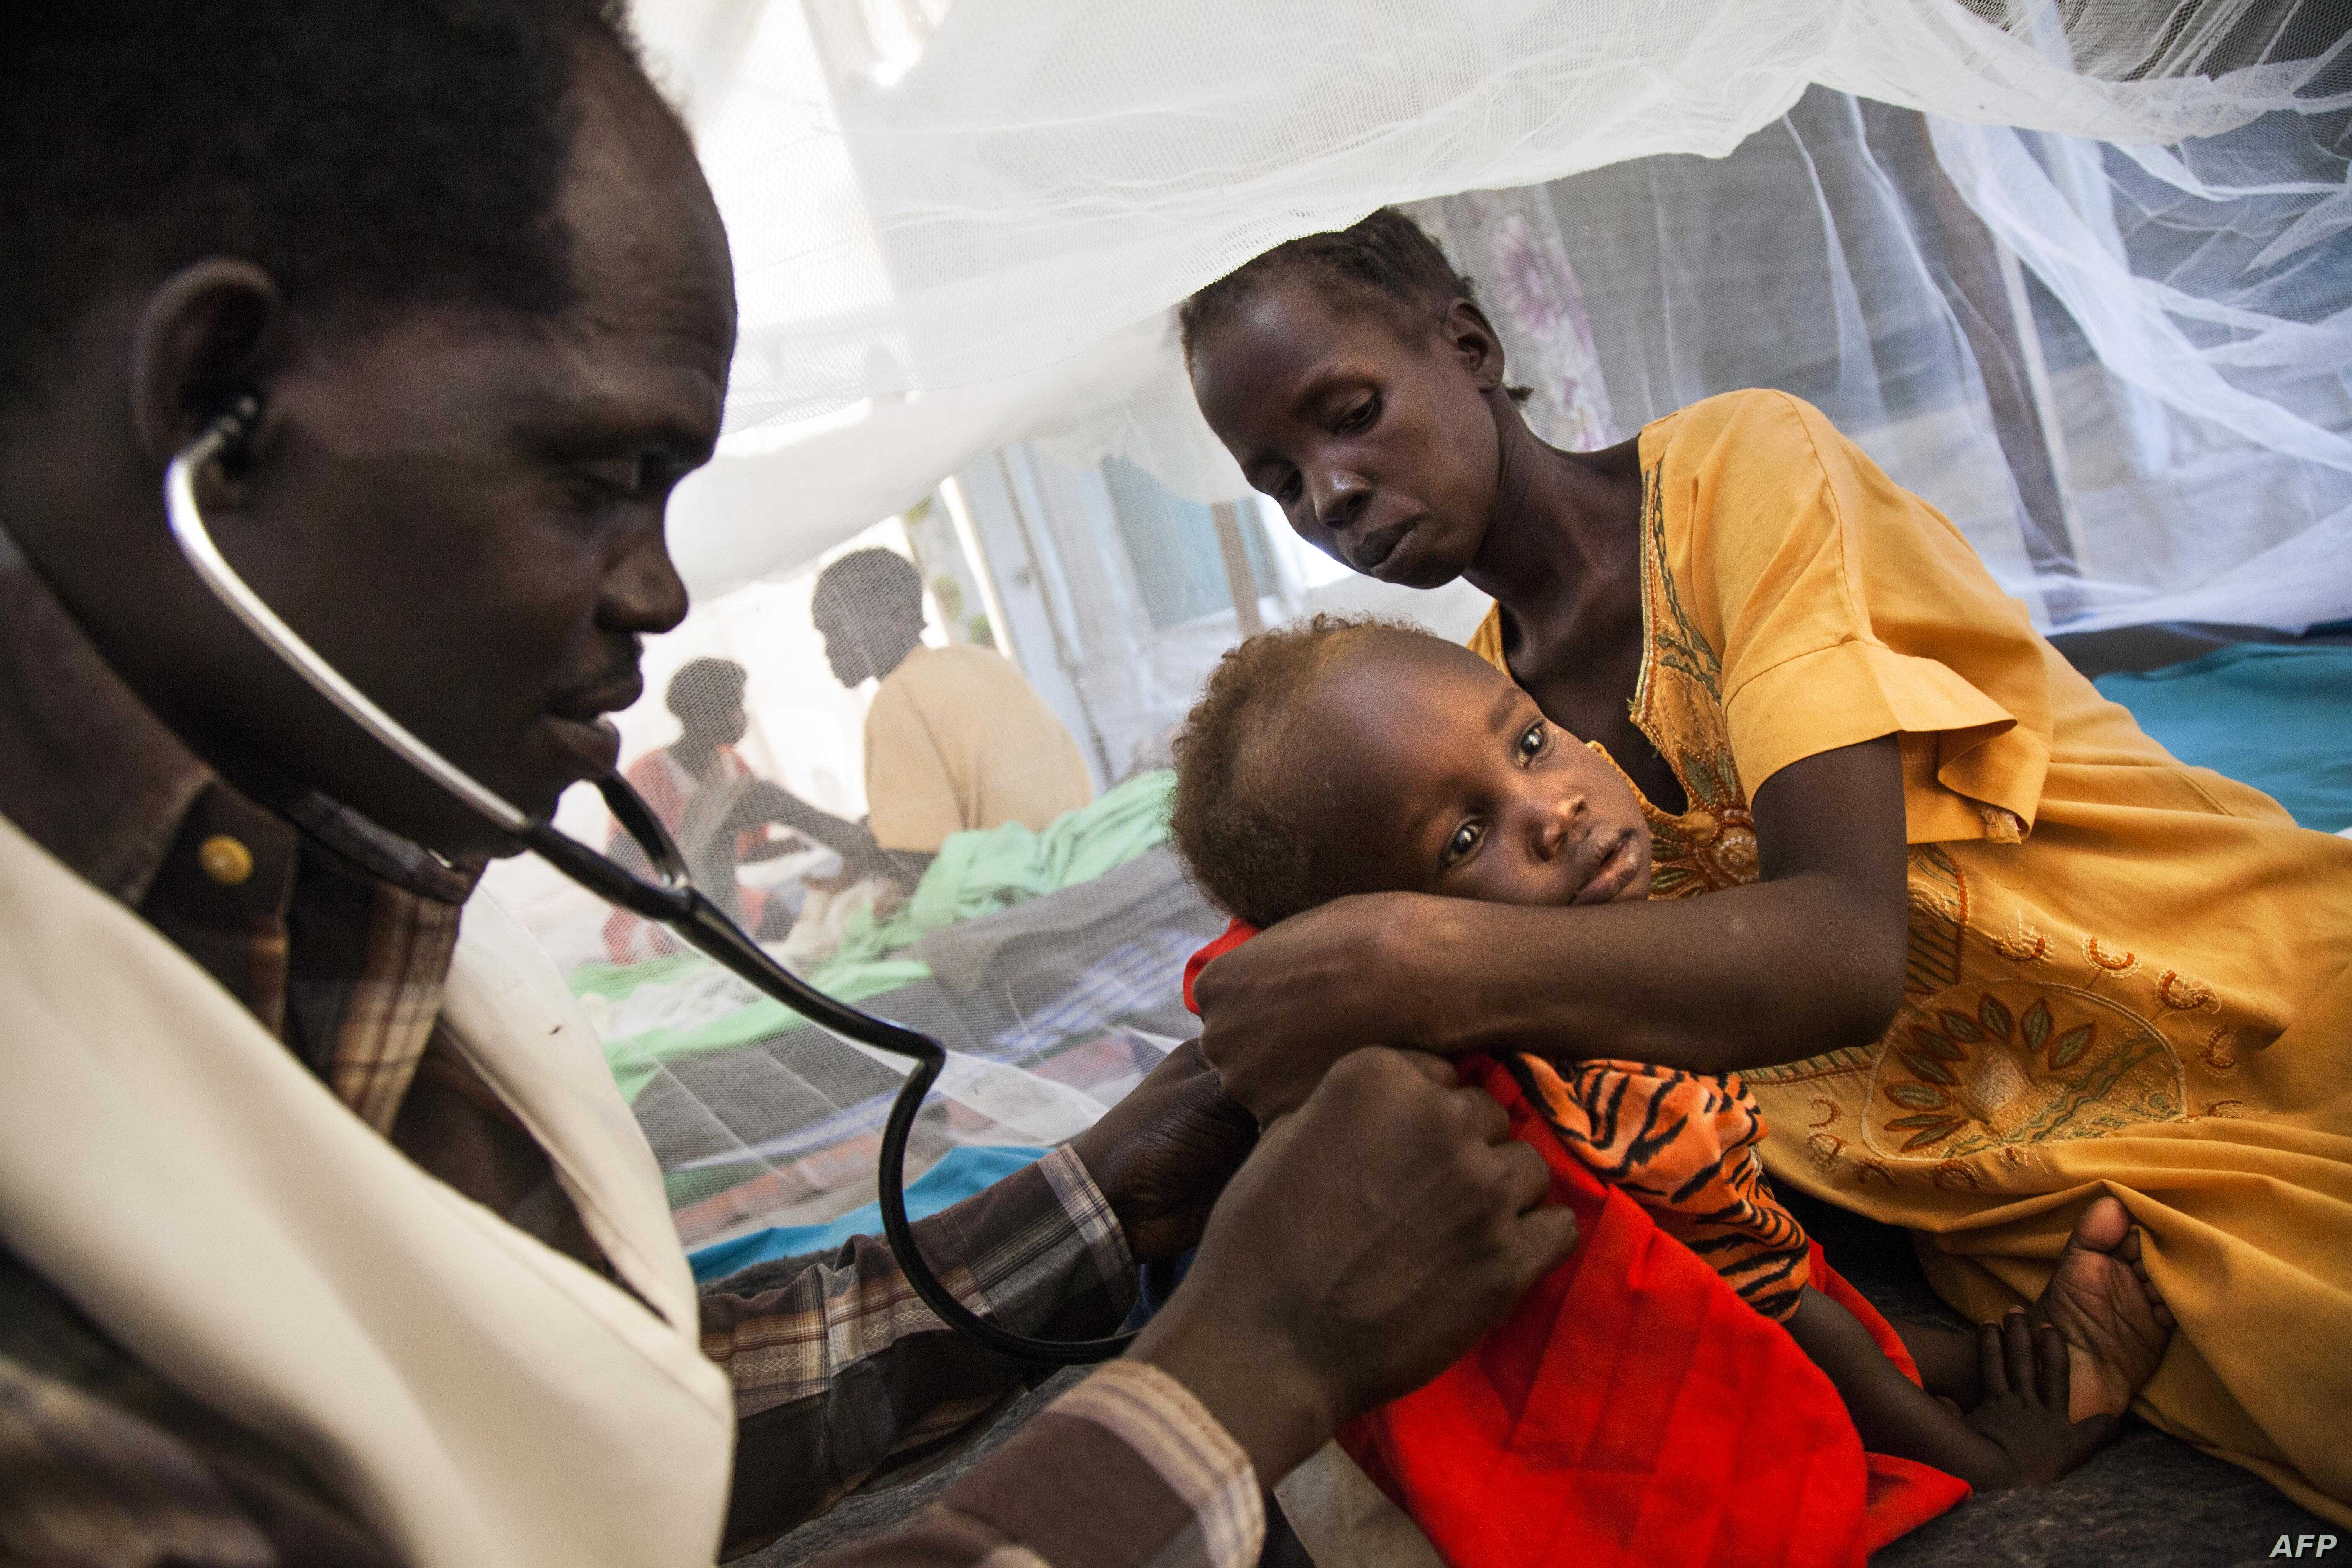 Doctor Simon Angelo (L) examines Iman Steven suffering from tuberculosis, held by her mother (R) at the hospital of Doctors Without Borders (MSF) on June 15, 2016, at the Protection of Civilians (PoC) site in Malakal, South Sudan.